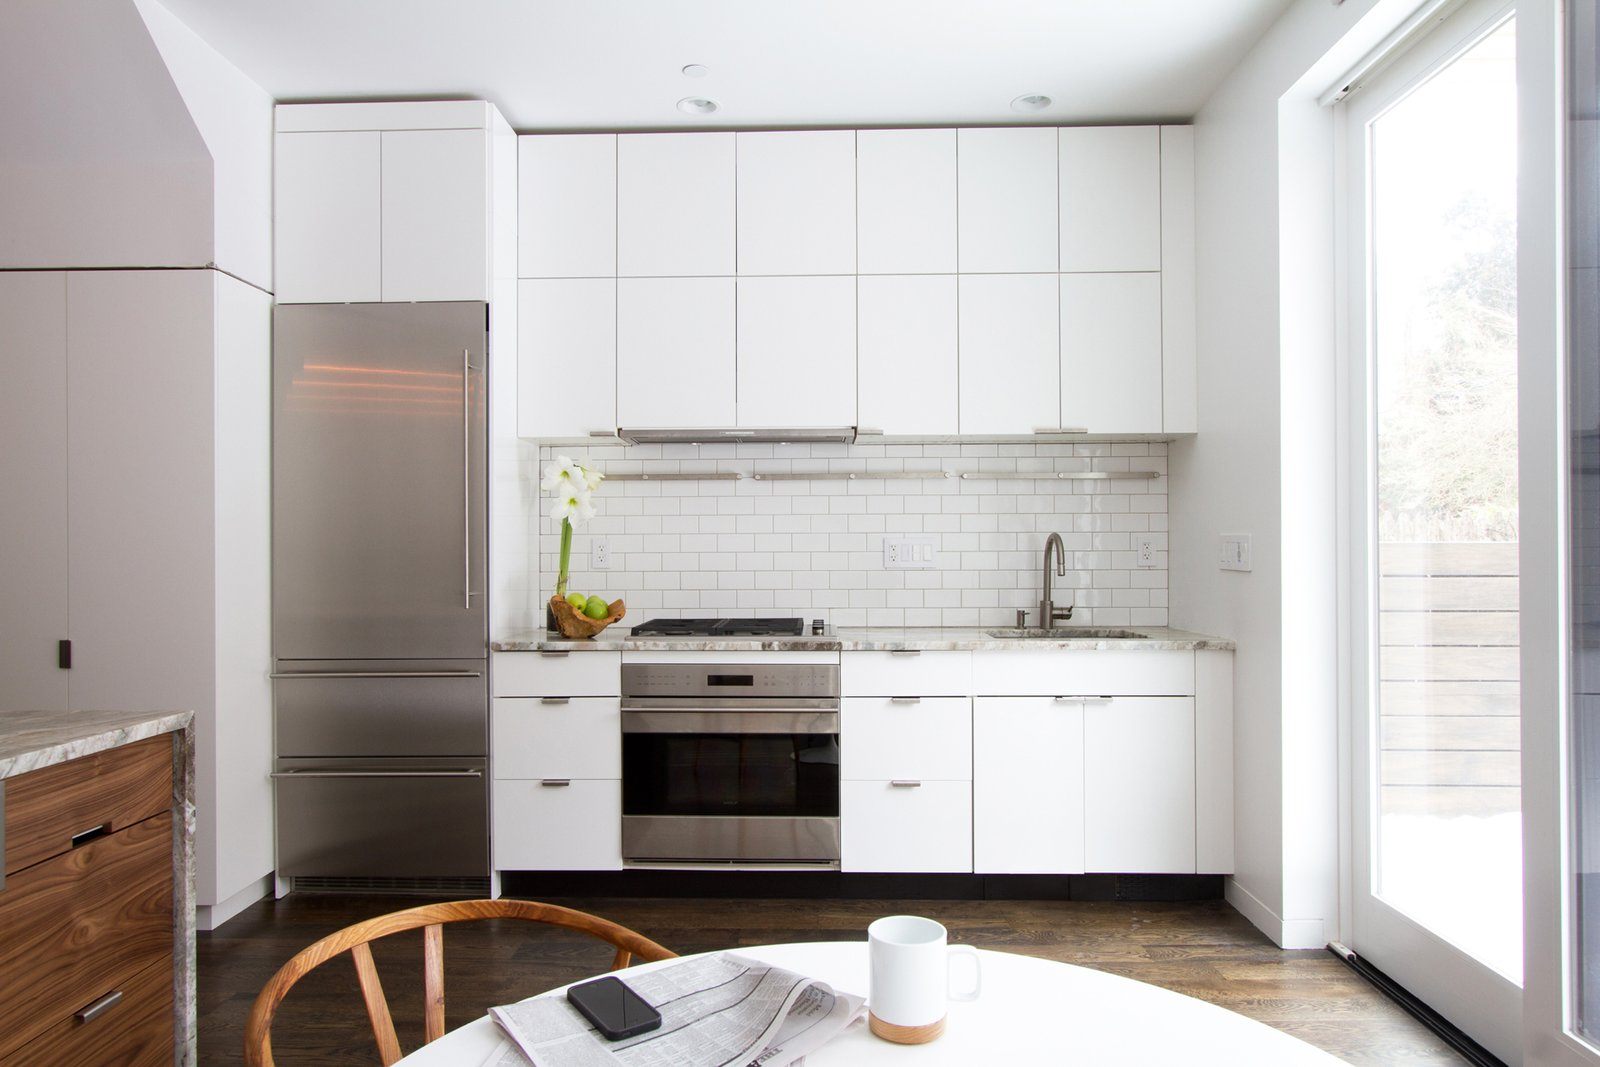 Kitchen Brooklyn Row 2 by Office of Architecture